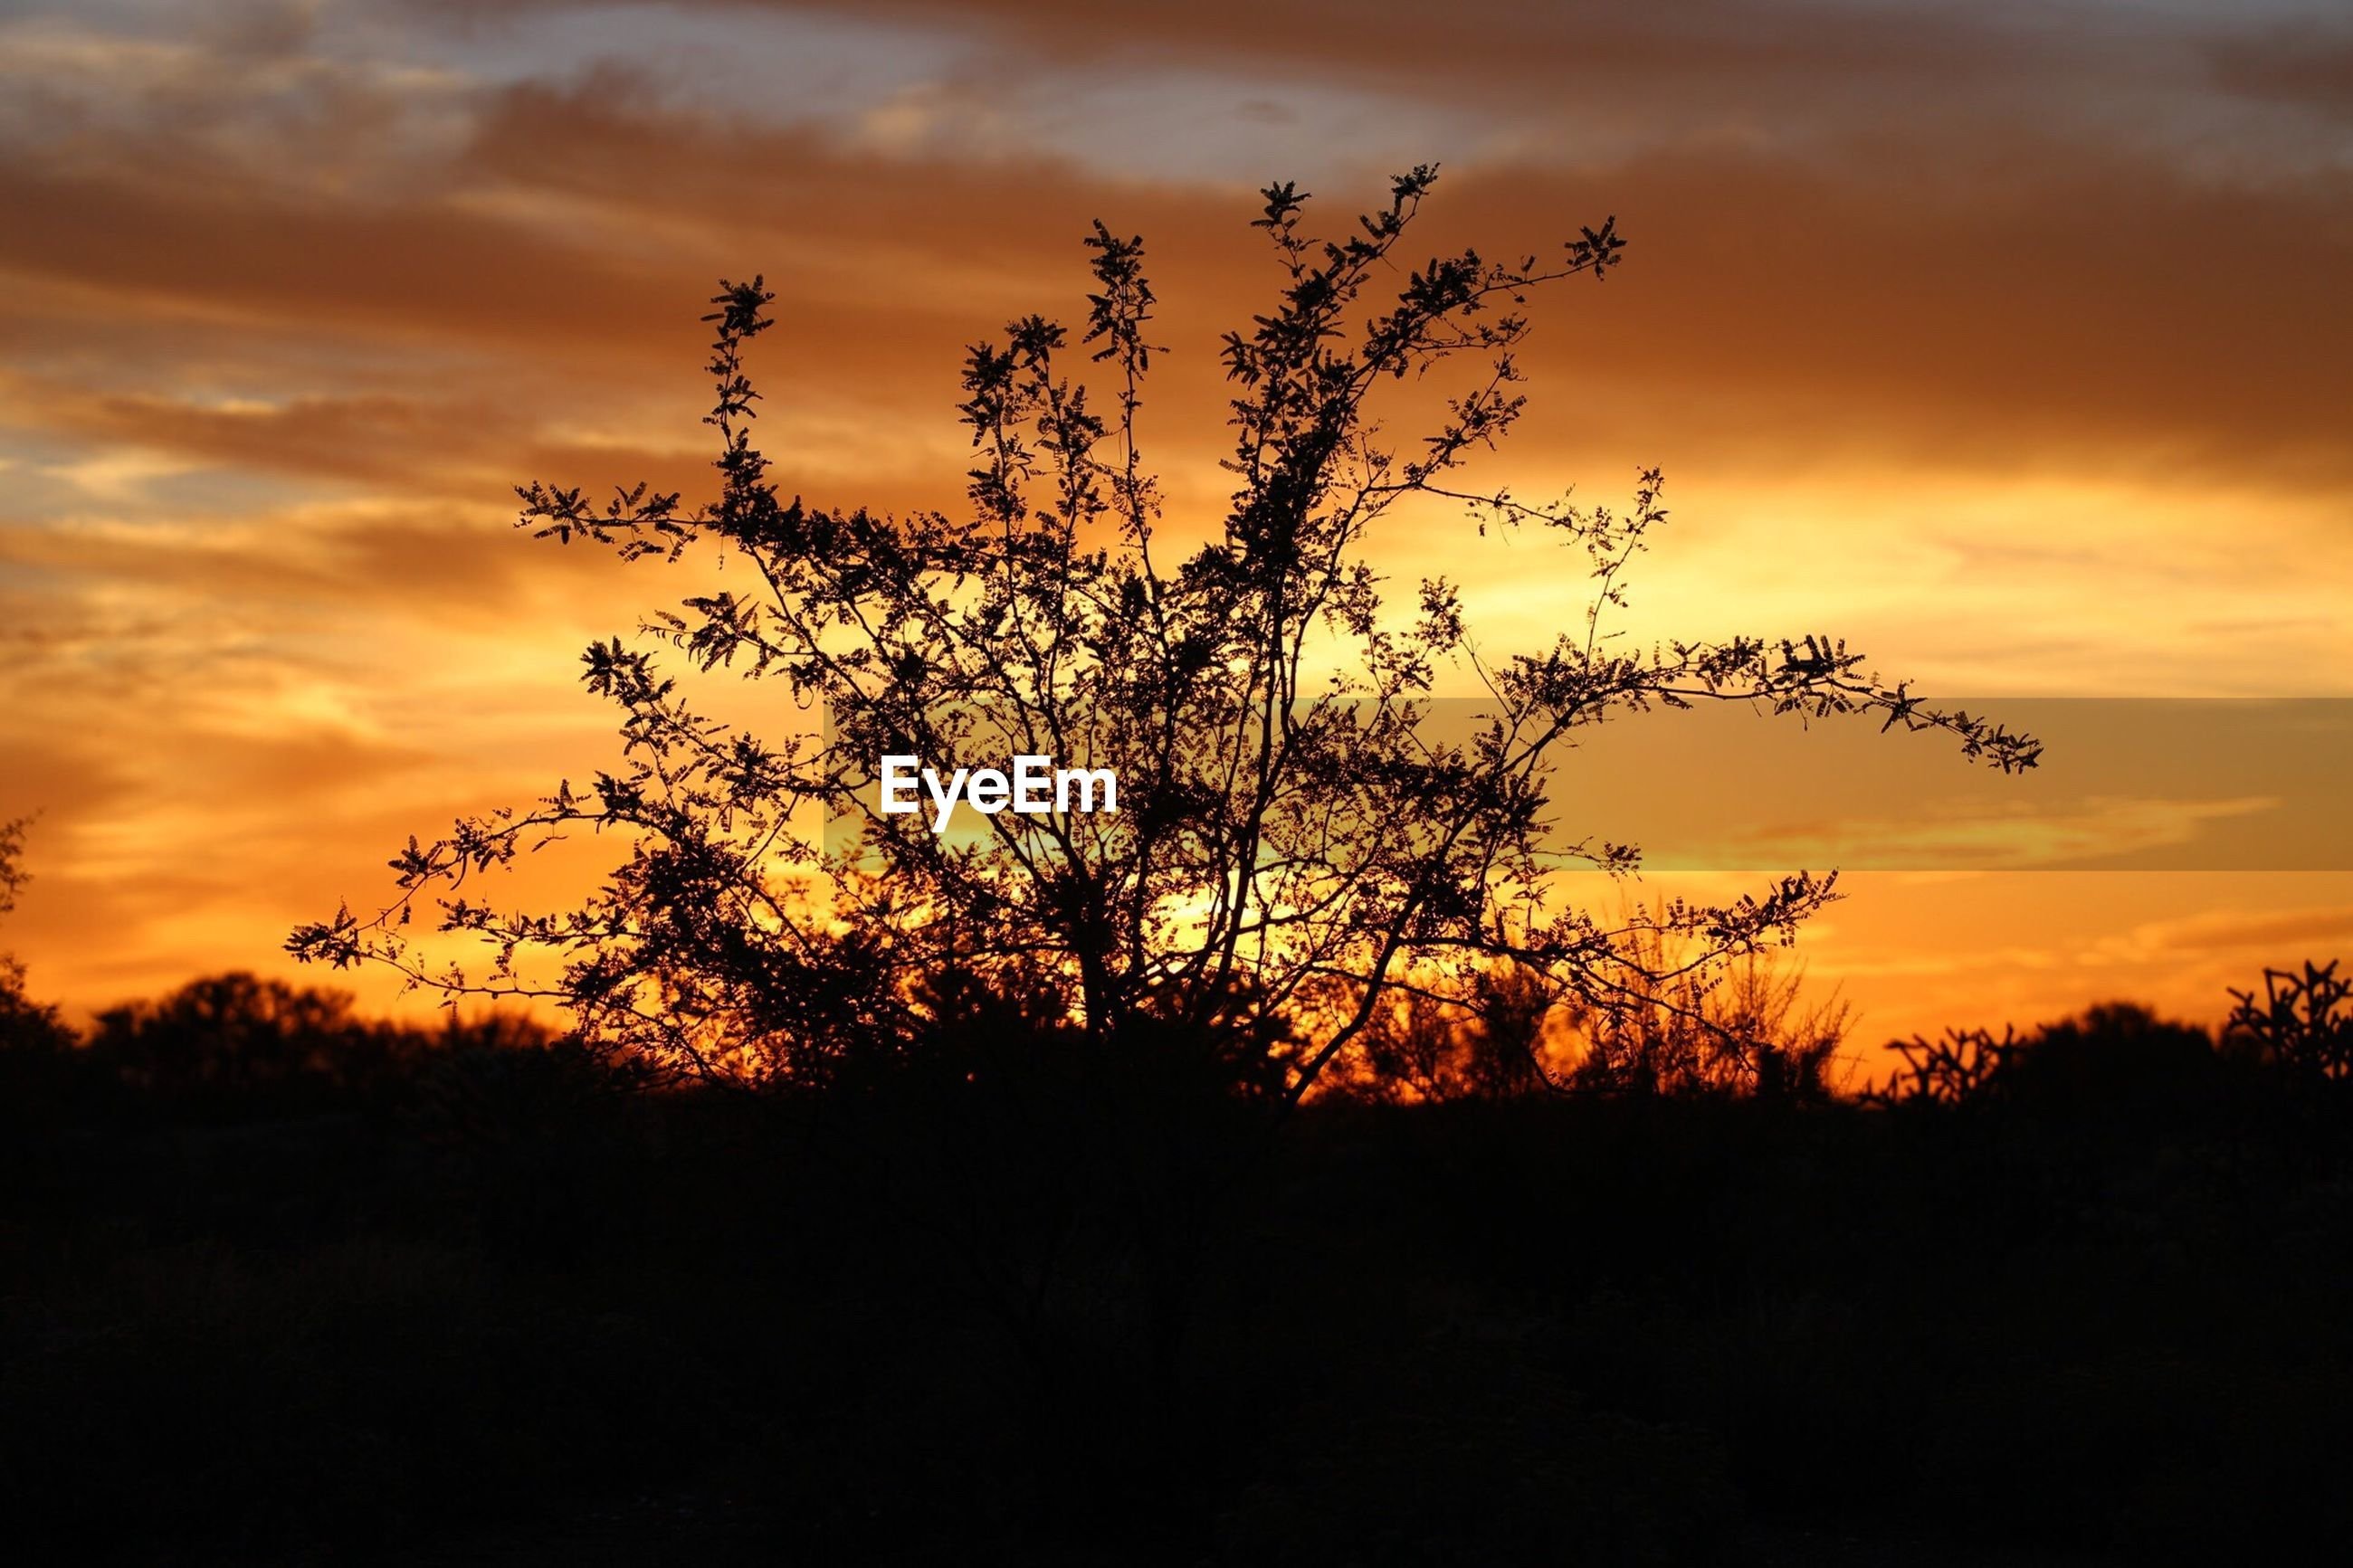 sunset, silhouette, beauty in nature, scenics, tranquil scene, tranquility, nature, tree, growth, landscape, sky, idyllic, branch, orange color, dramatic sky, dark, outdoors, non-urban scene, cloud - sky, plant, sun, field, majestic, remote, outline, moody sky, atmosphere, atmospheric mood, vibrant color, no people